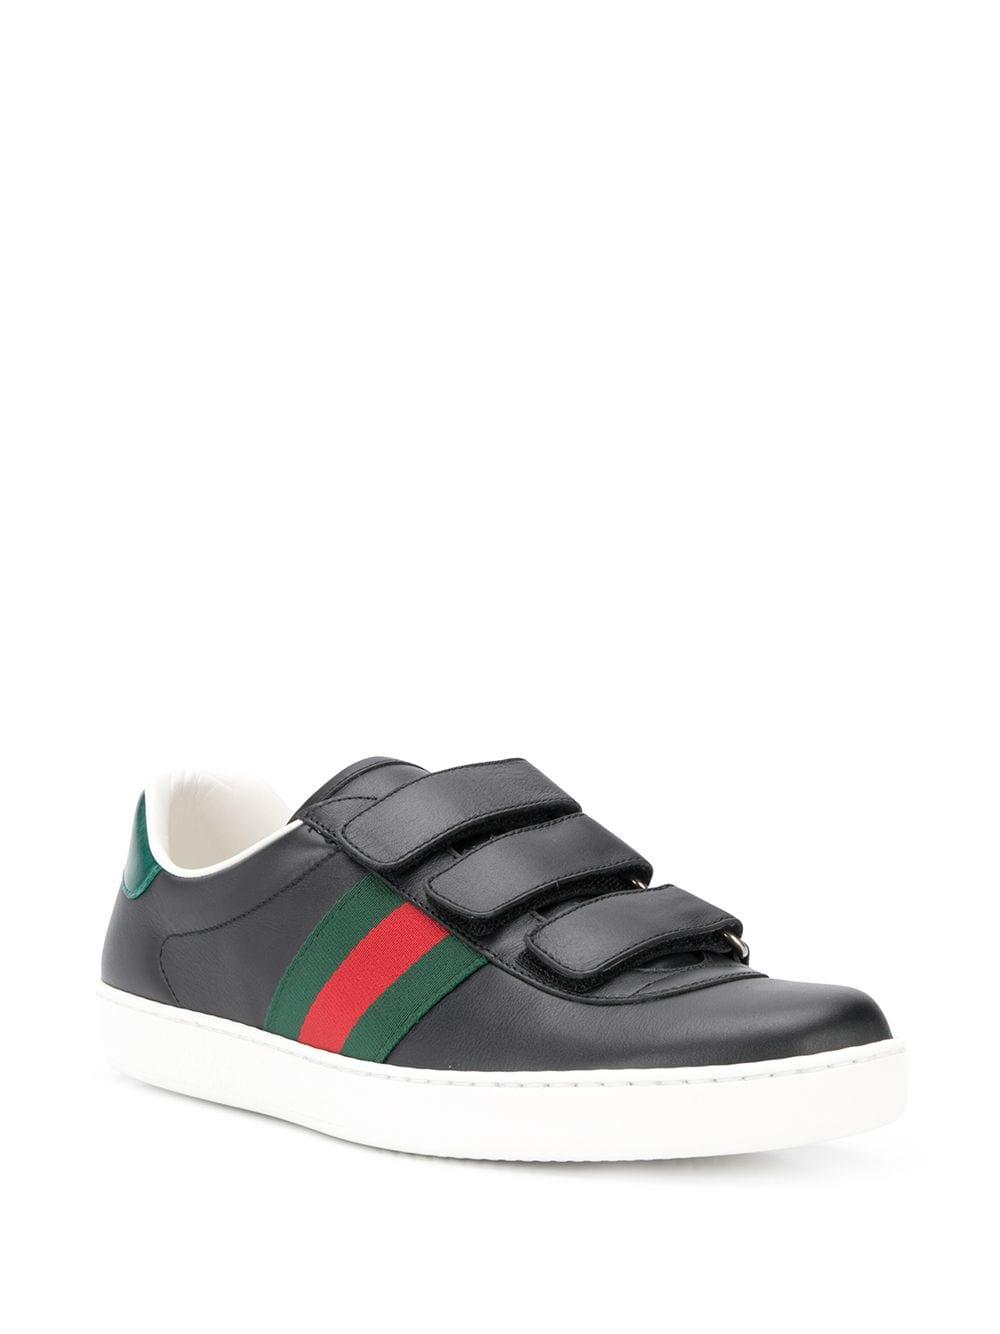 8c7b502556d Gucci New Ace Sneakers in Black for Men - Lyst